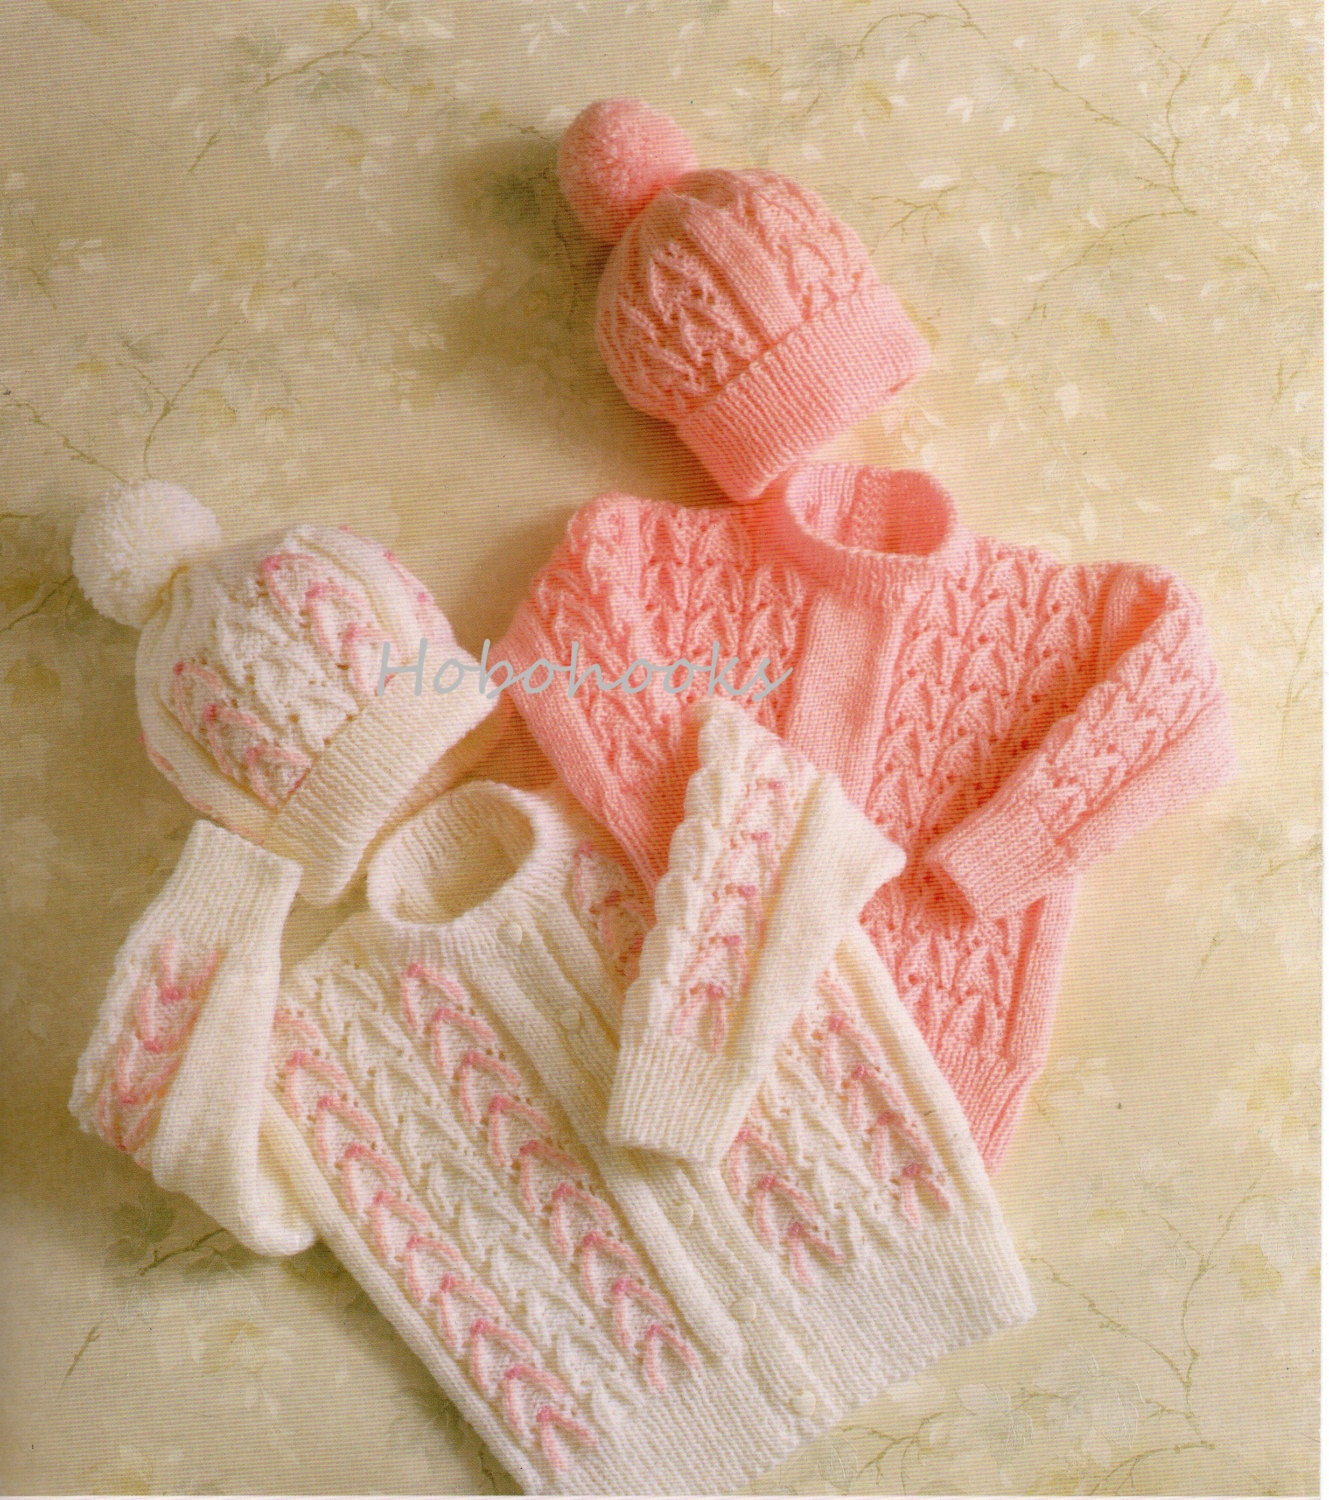 Baby Knitting Pattern Childrens Knitting Pattern cardigan sweater  hat  baby set 2026inches DK Baby Knitting Patterns PDF instant download